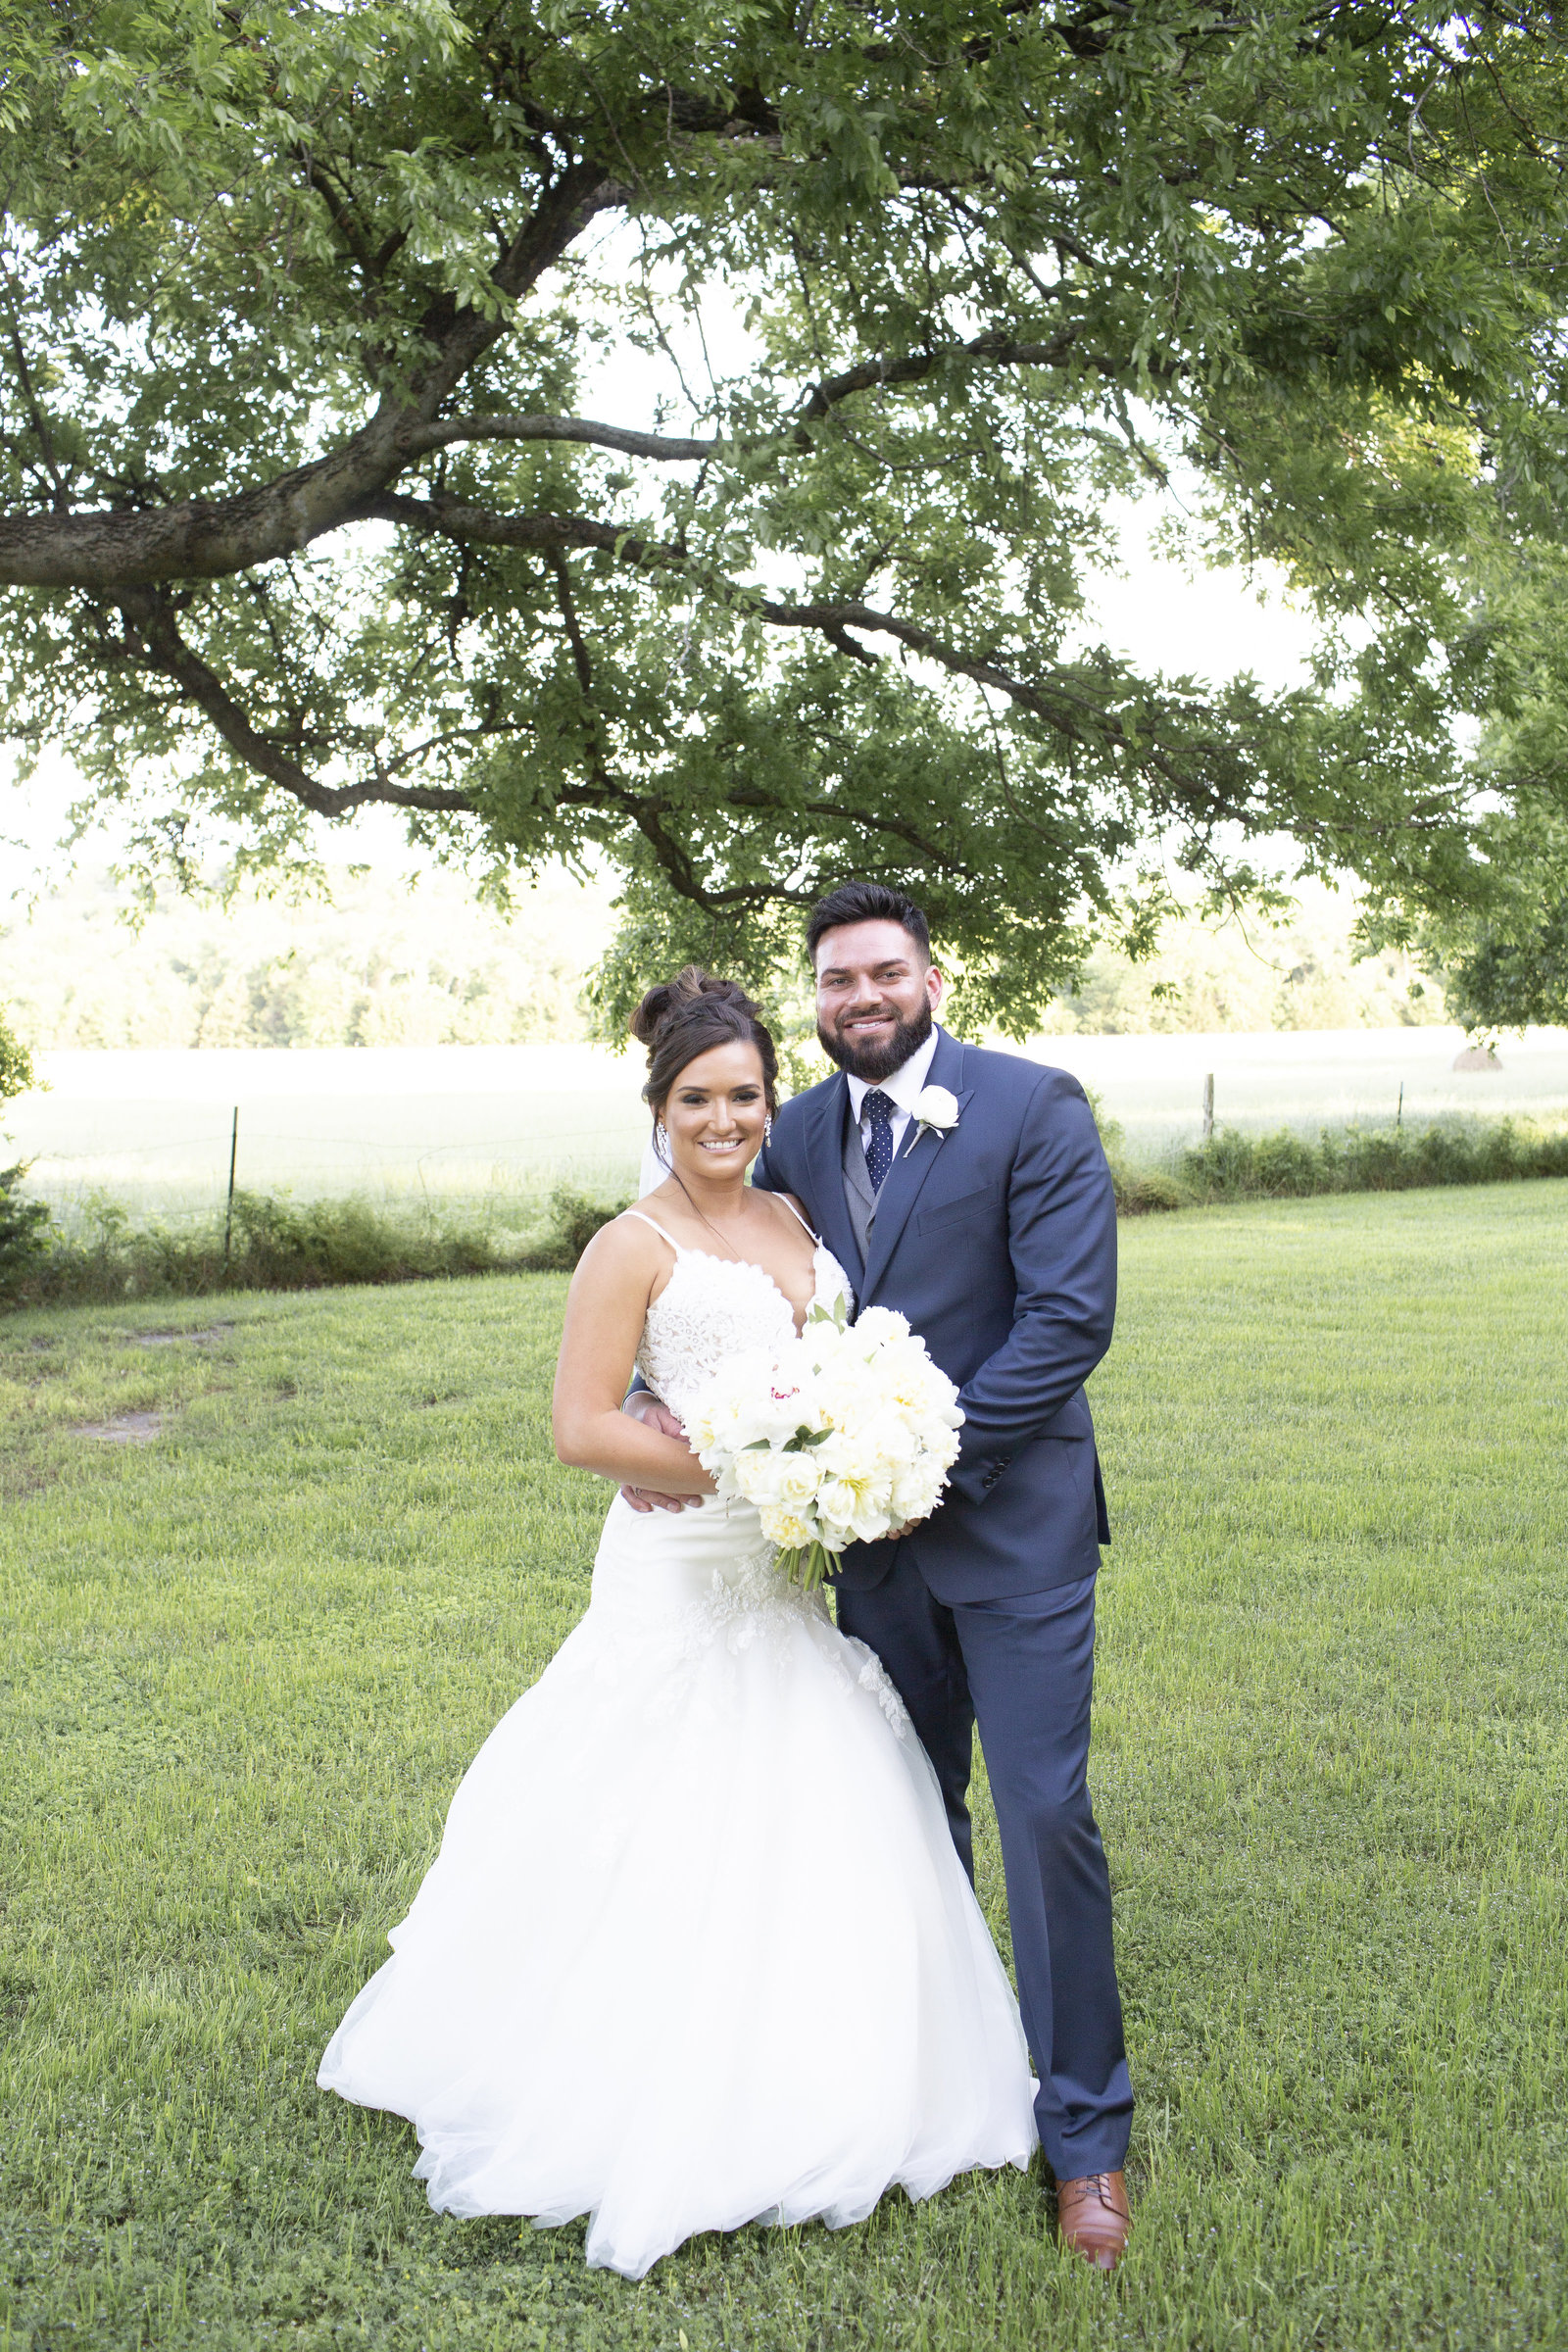 RMPhotography_PenaWedding_May4th2019_B+Gportraits-2